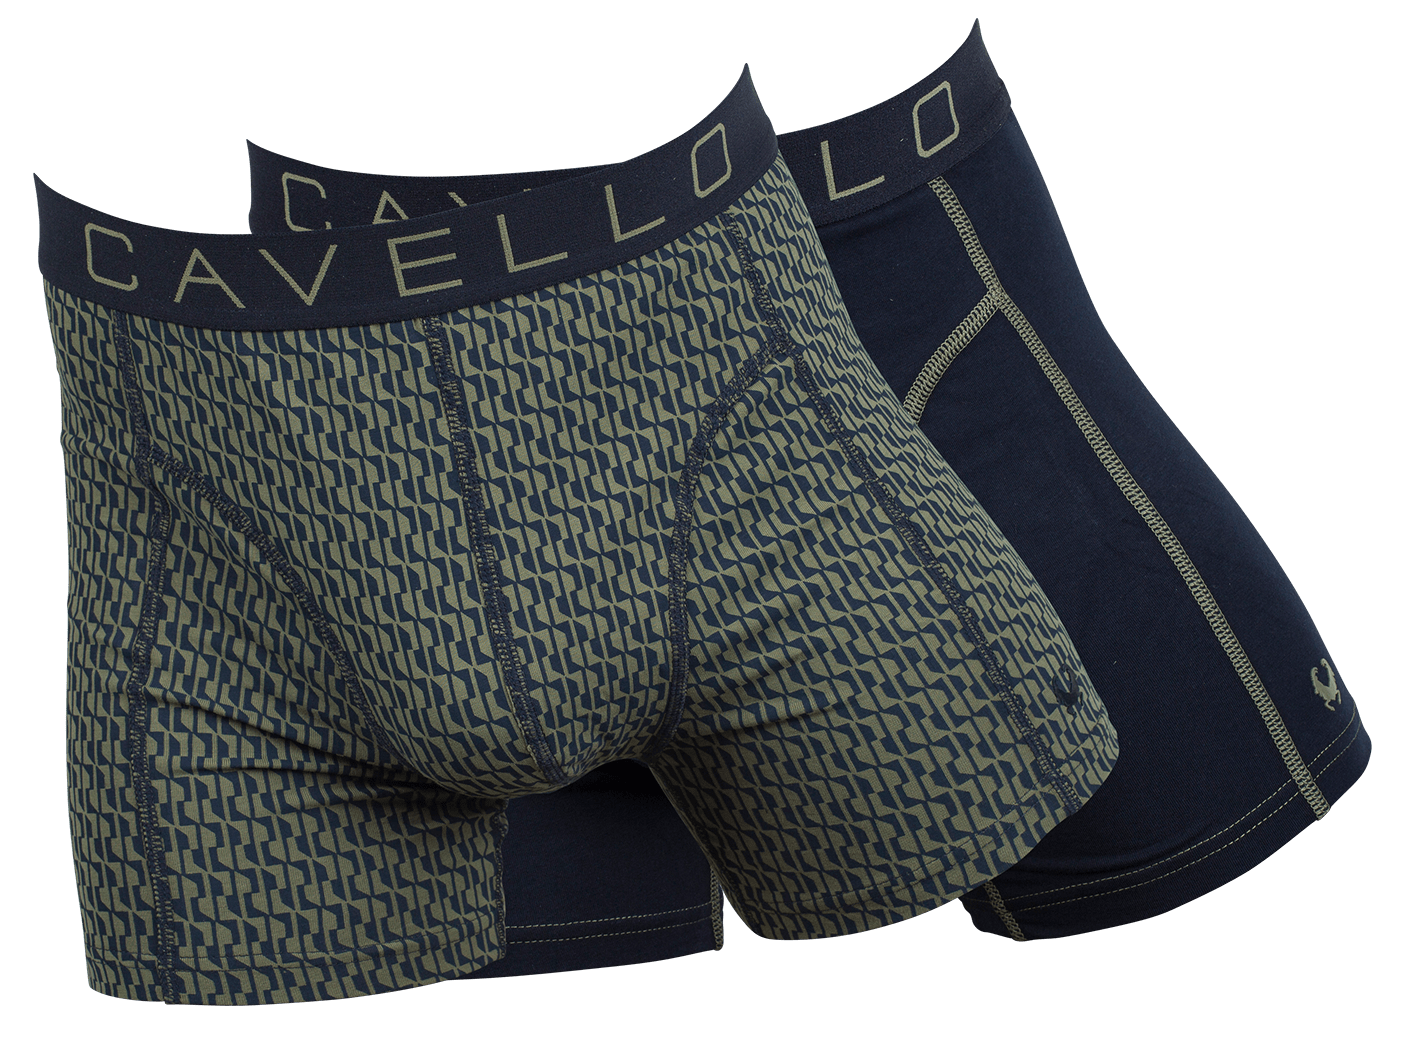 Cavello heren boxershort 2-pack 18011